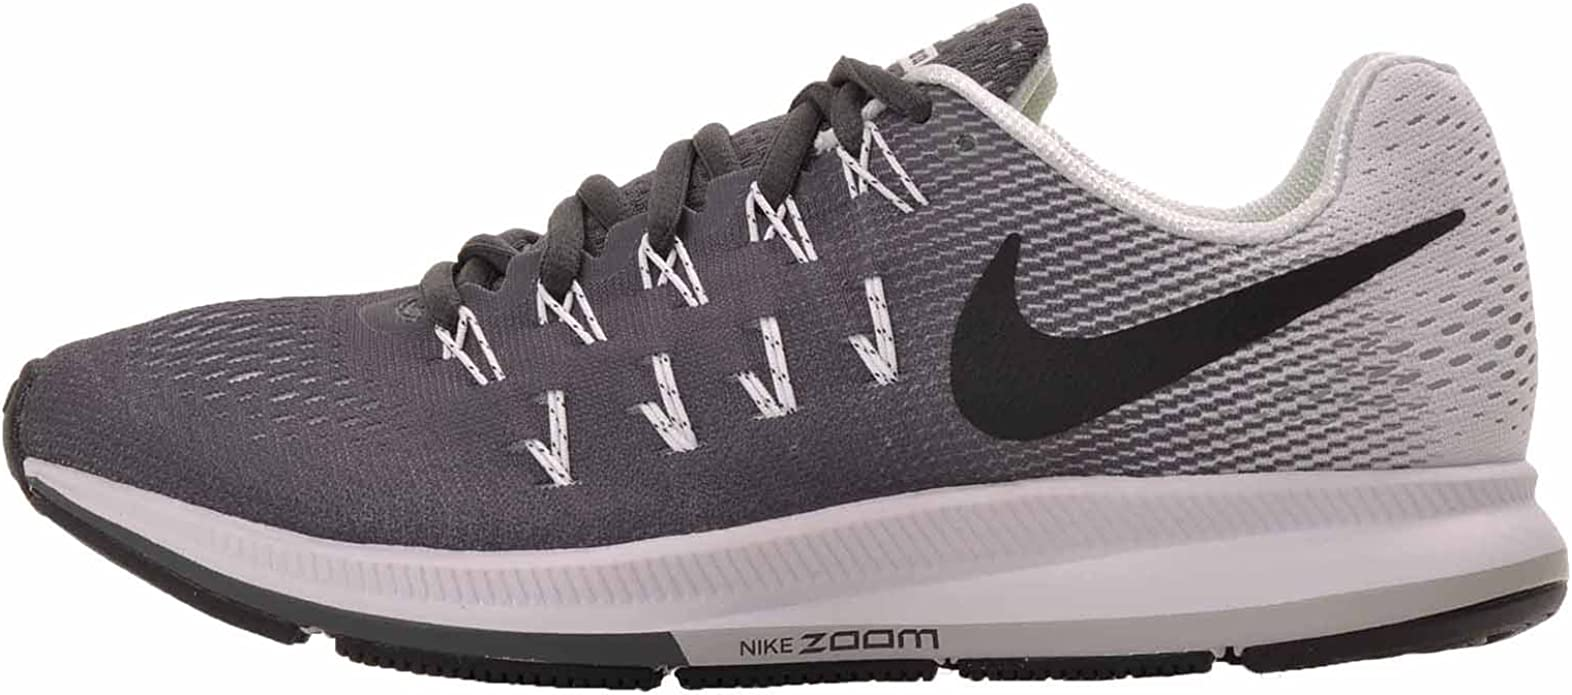 Nike Wmns Air Zoom Pegasus 33, Zapatillas de Running Unisex Adulto, Gris (Gris (Dark Grey/Black-White), 44 1/2 EU: Amazon.es: Zapatos y complementos